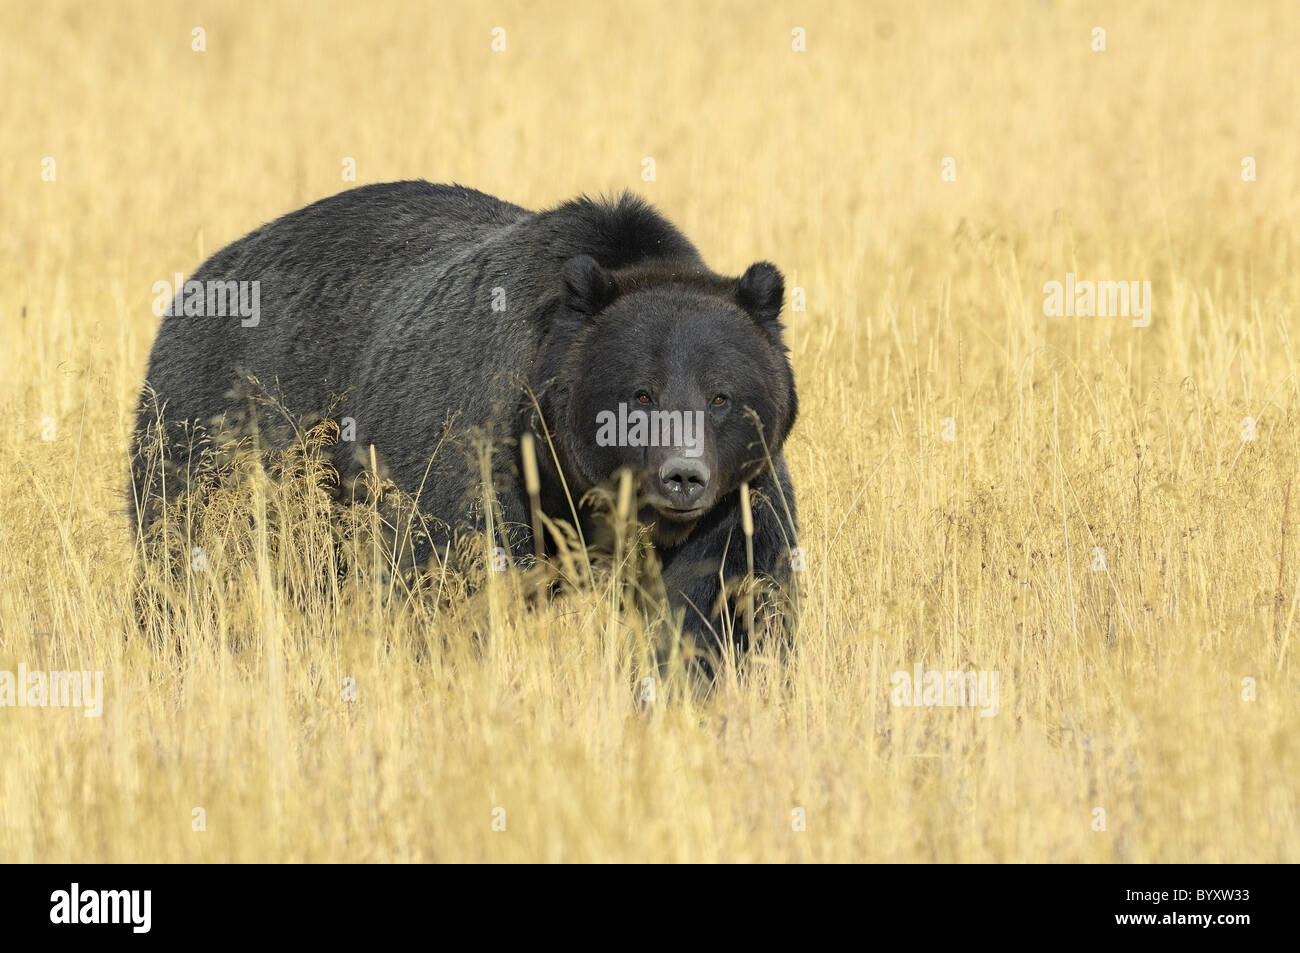 Beautiful black Grizzly Bear in the tall golden grasses of autumn in Yellowstone National Park. - Stock Image